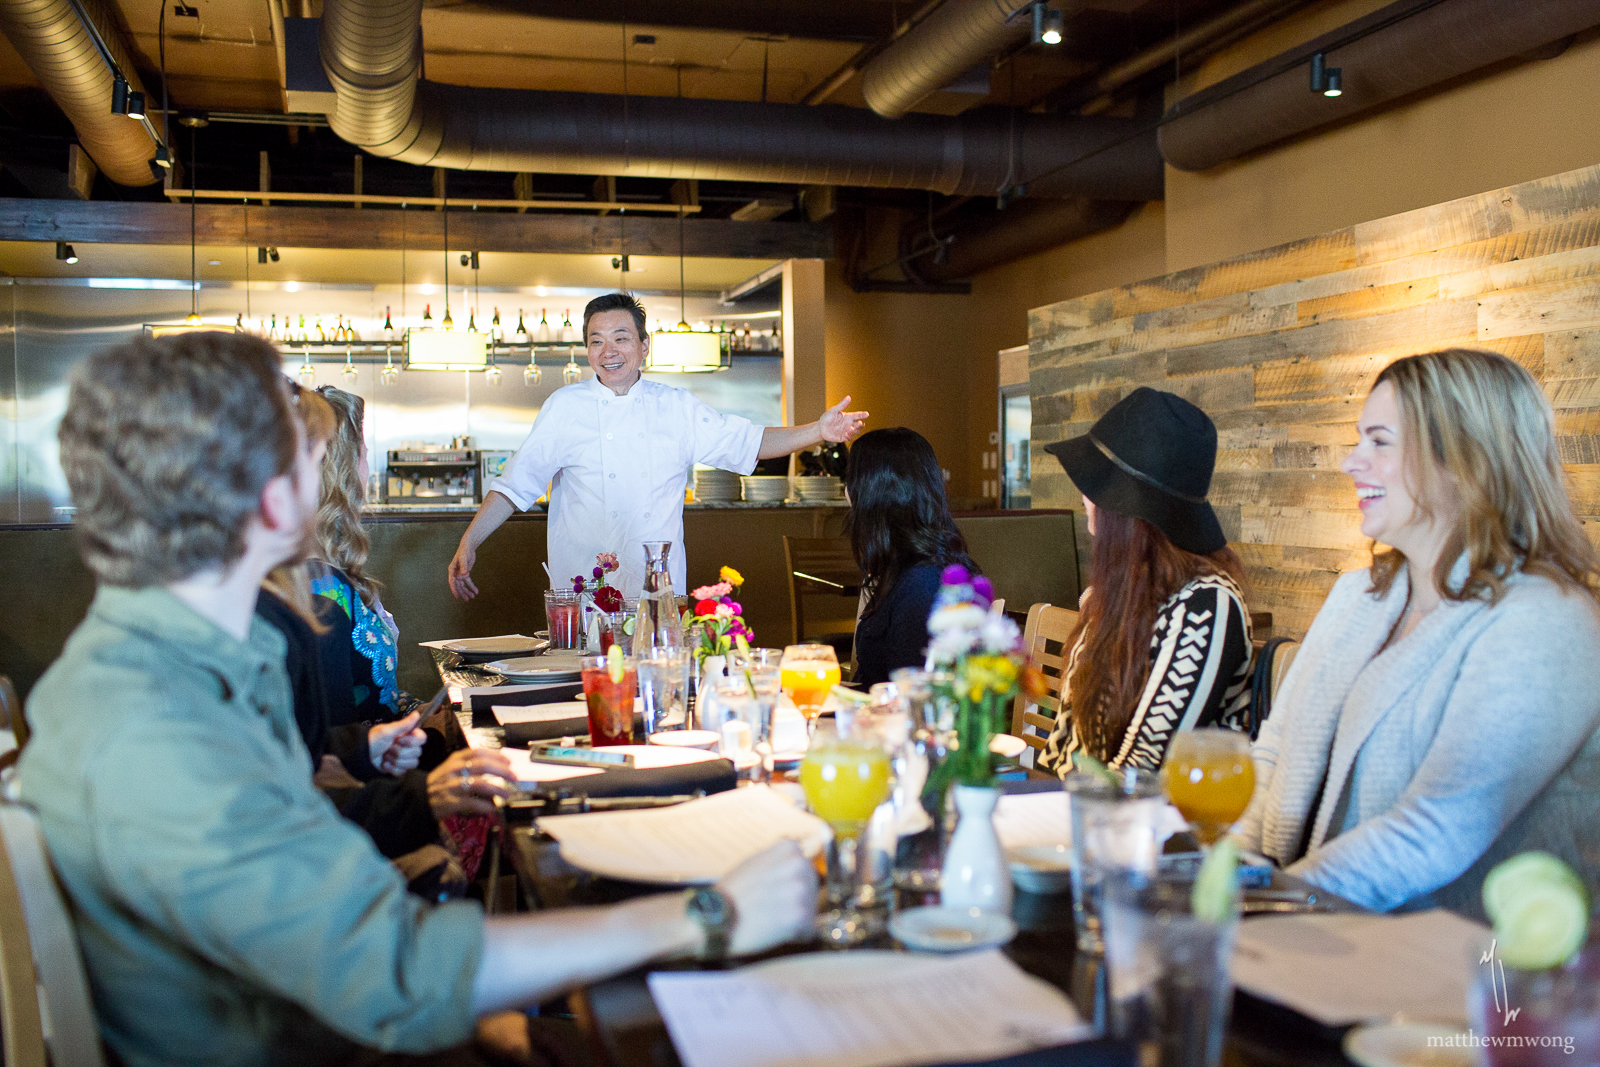 Chef Sun tells us his story of coming to Atlanta